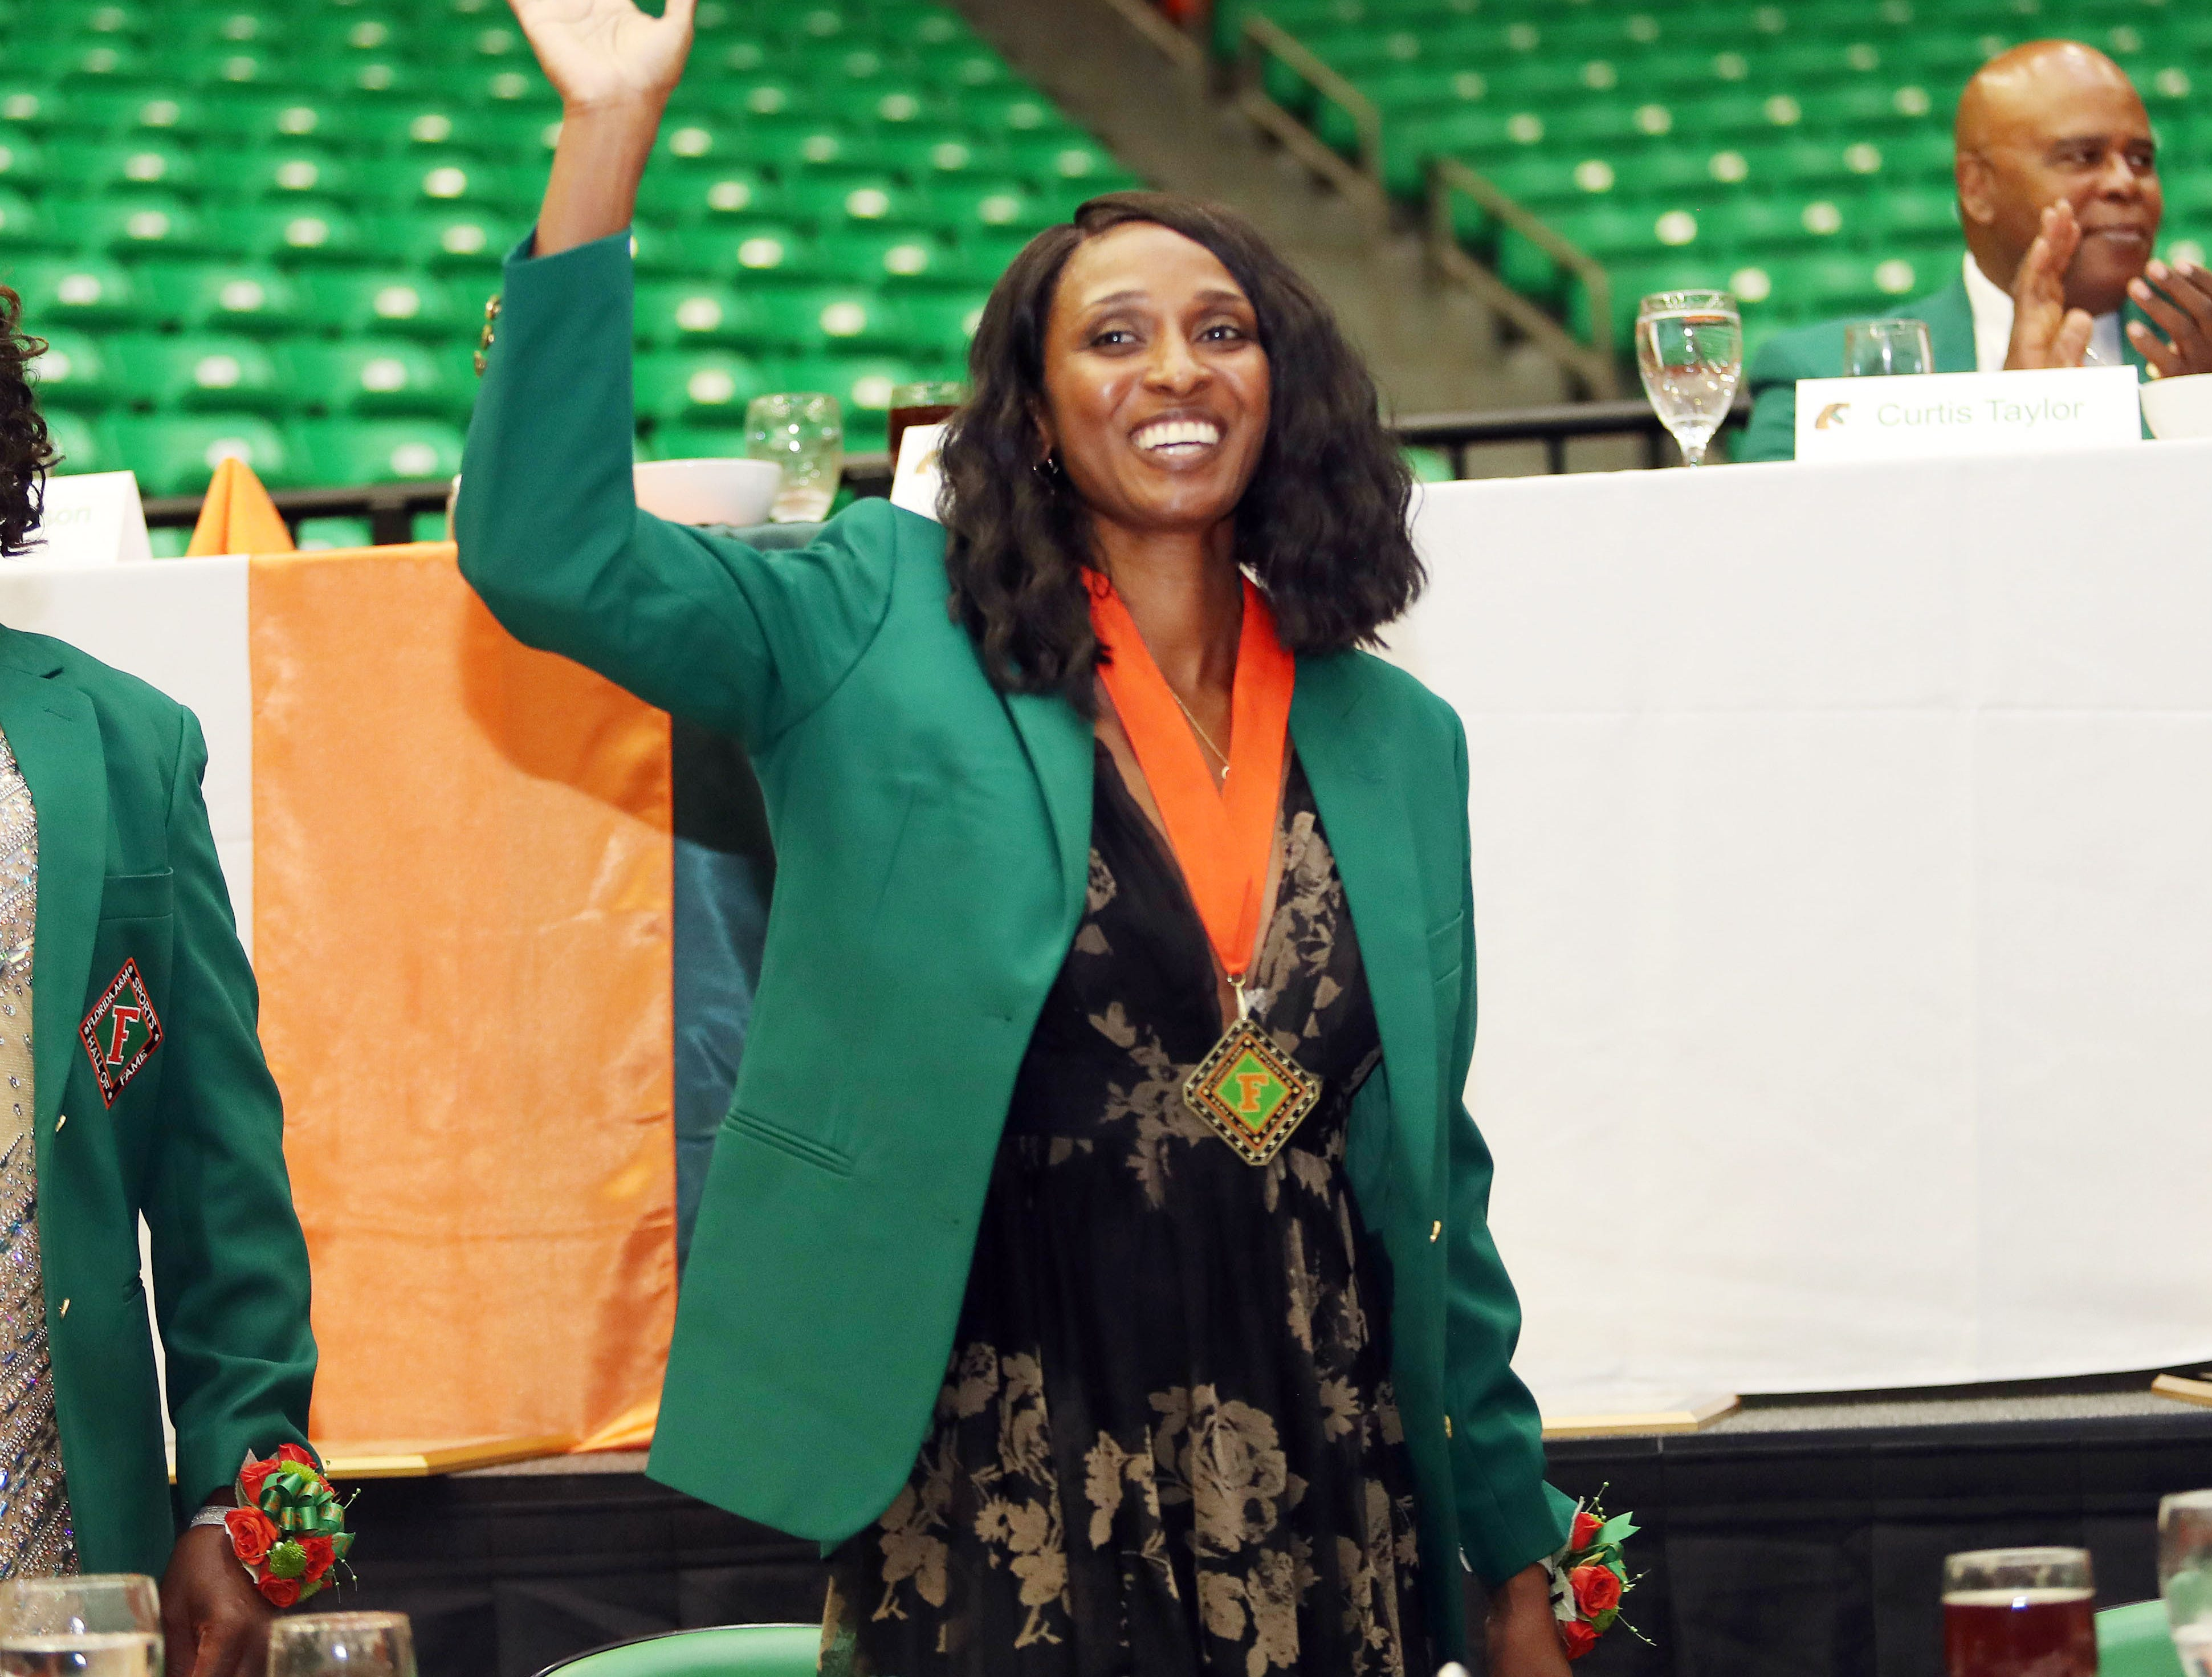 Janell Staton ruled the softball diamond as a pitcher and shortstop in the mid 1990s. She is now immortalized in the FAMU Sports Hall of Fame.